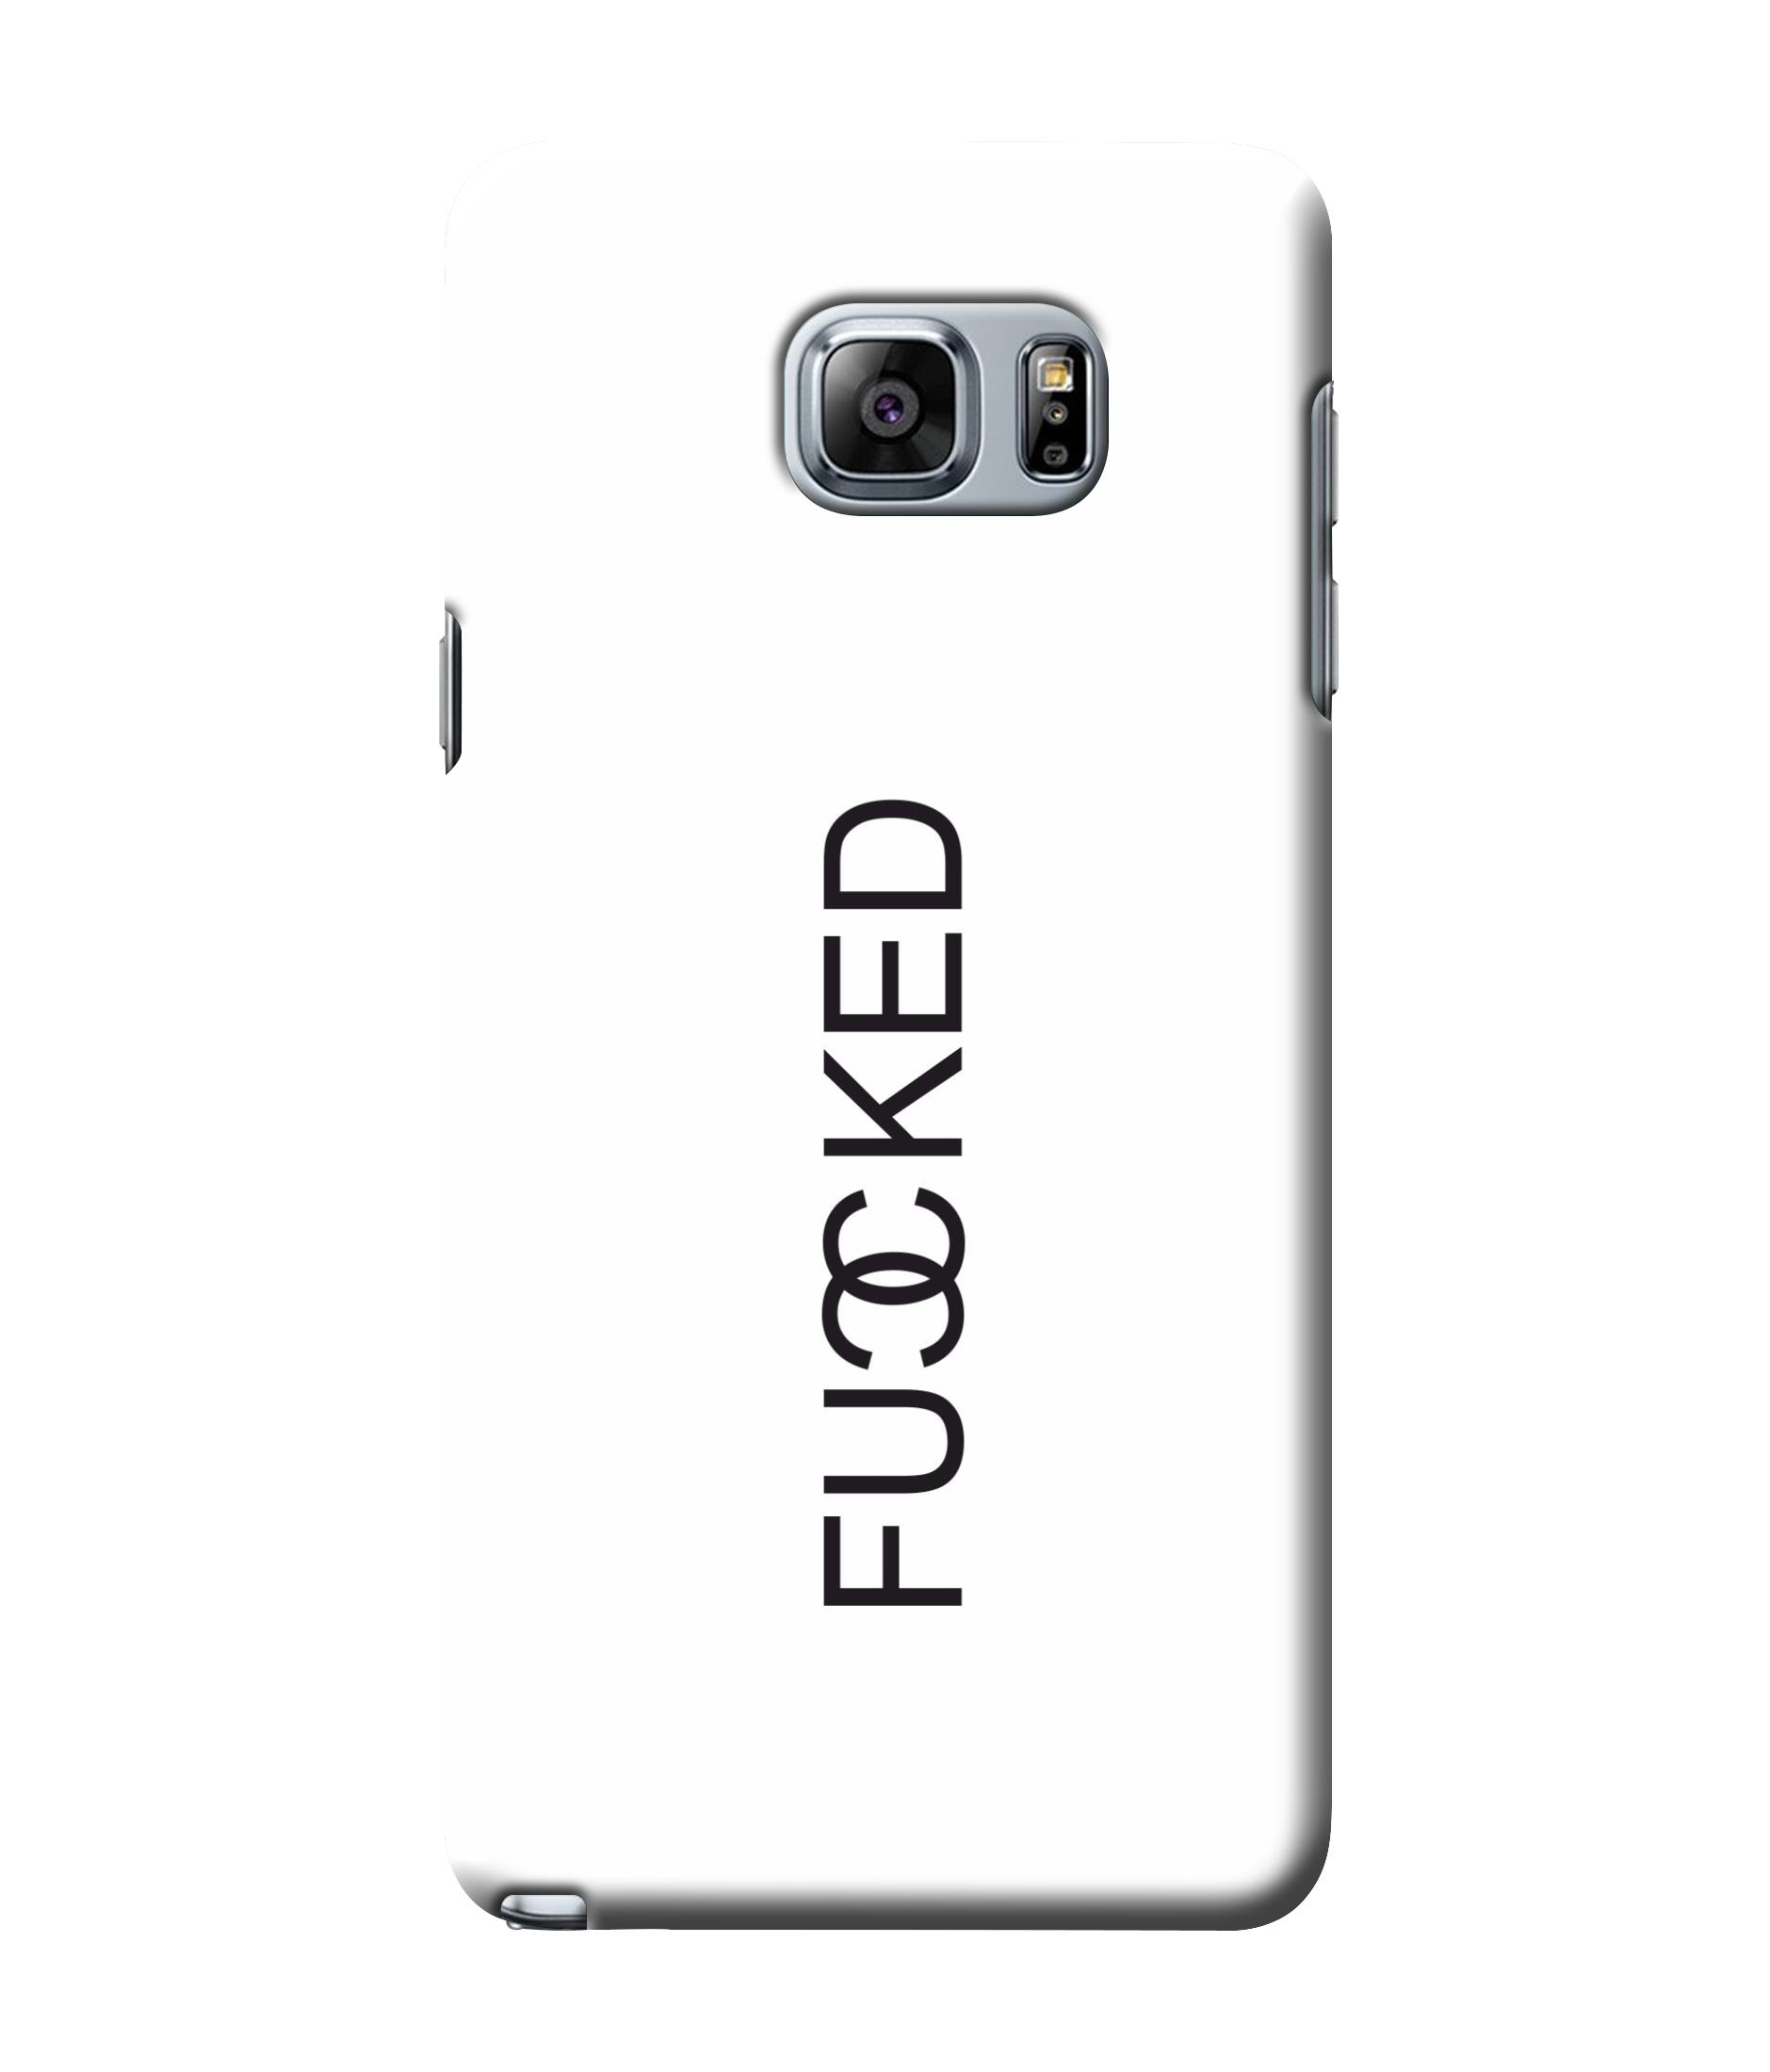 caseophile2 Samsung Galaxy Note 5 Fucked White Mobile Case